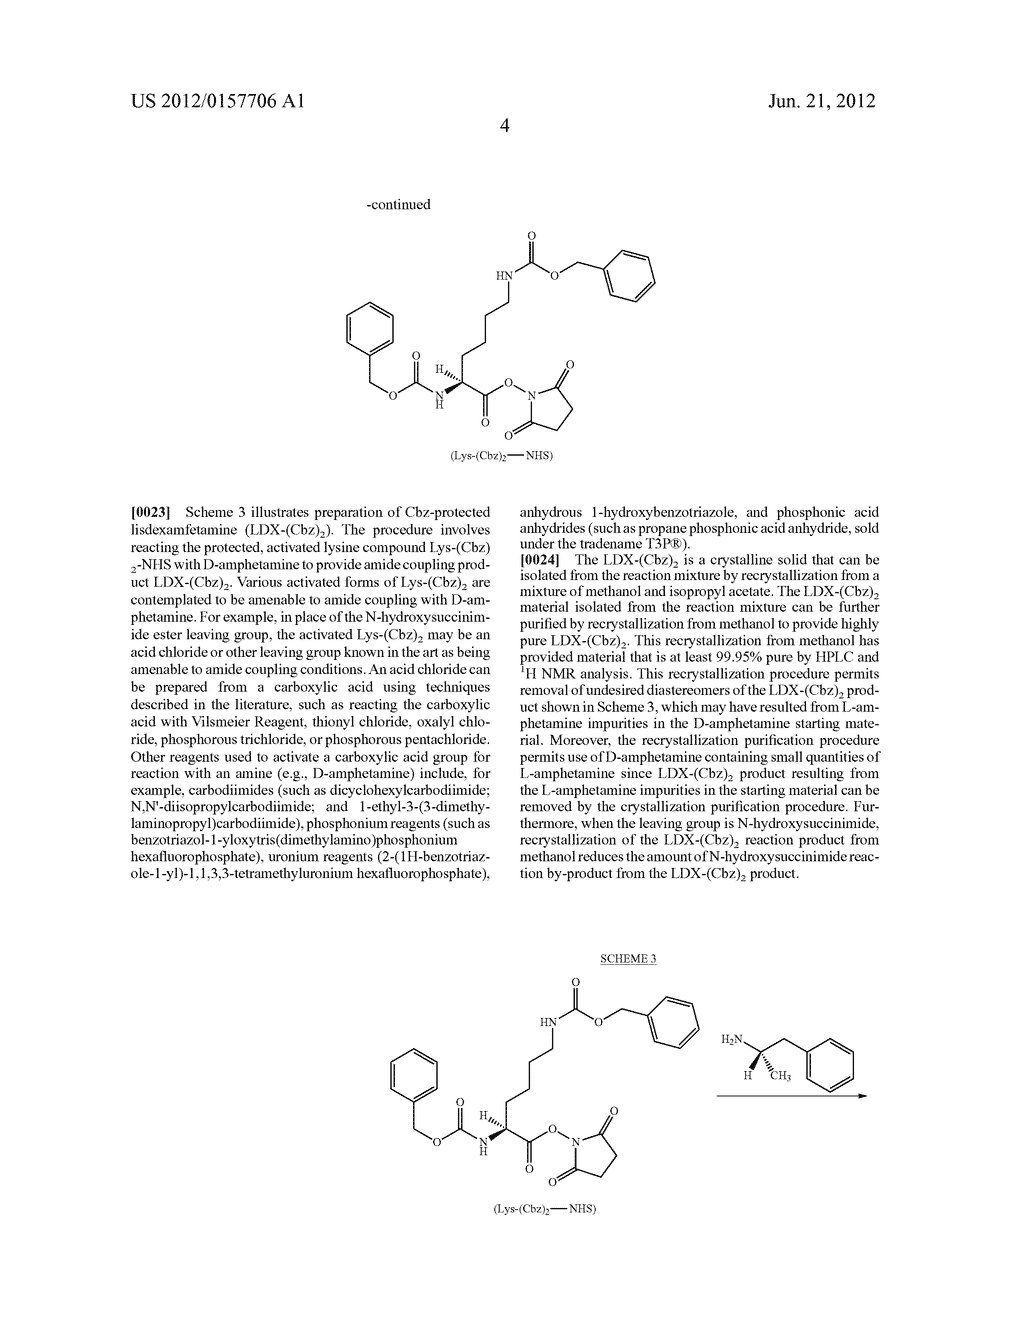 Methods and Compositions for Preparing Lisdexamfetamine and Salts Thereof - diagram, schematic, and image 05